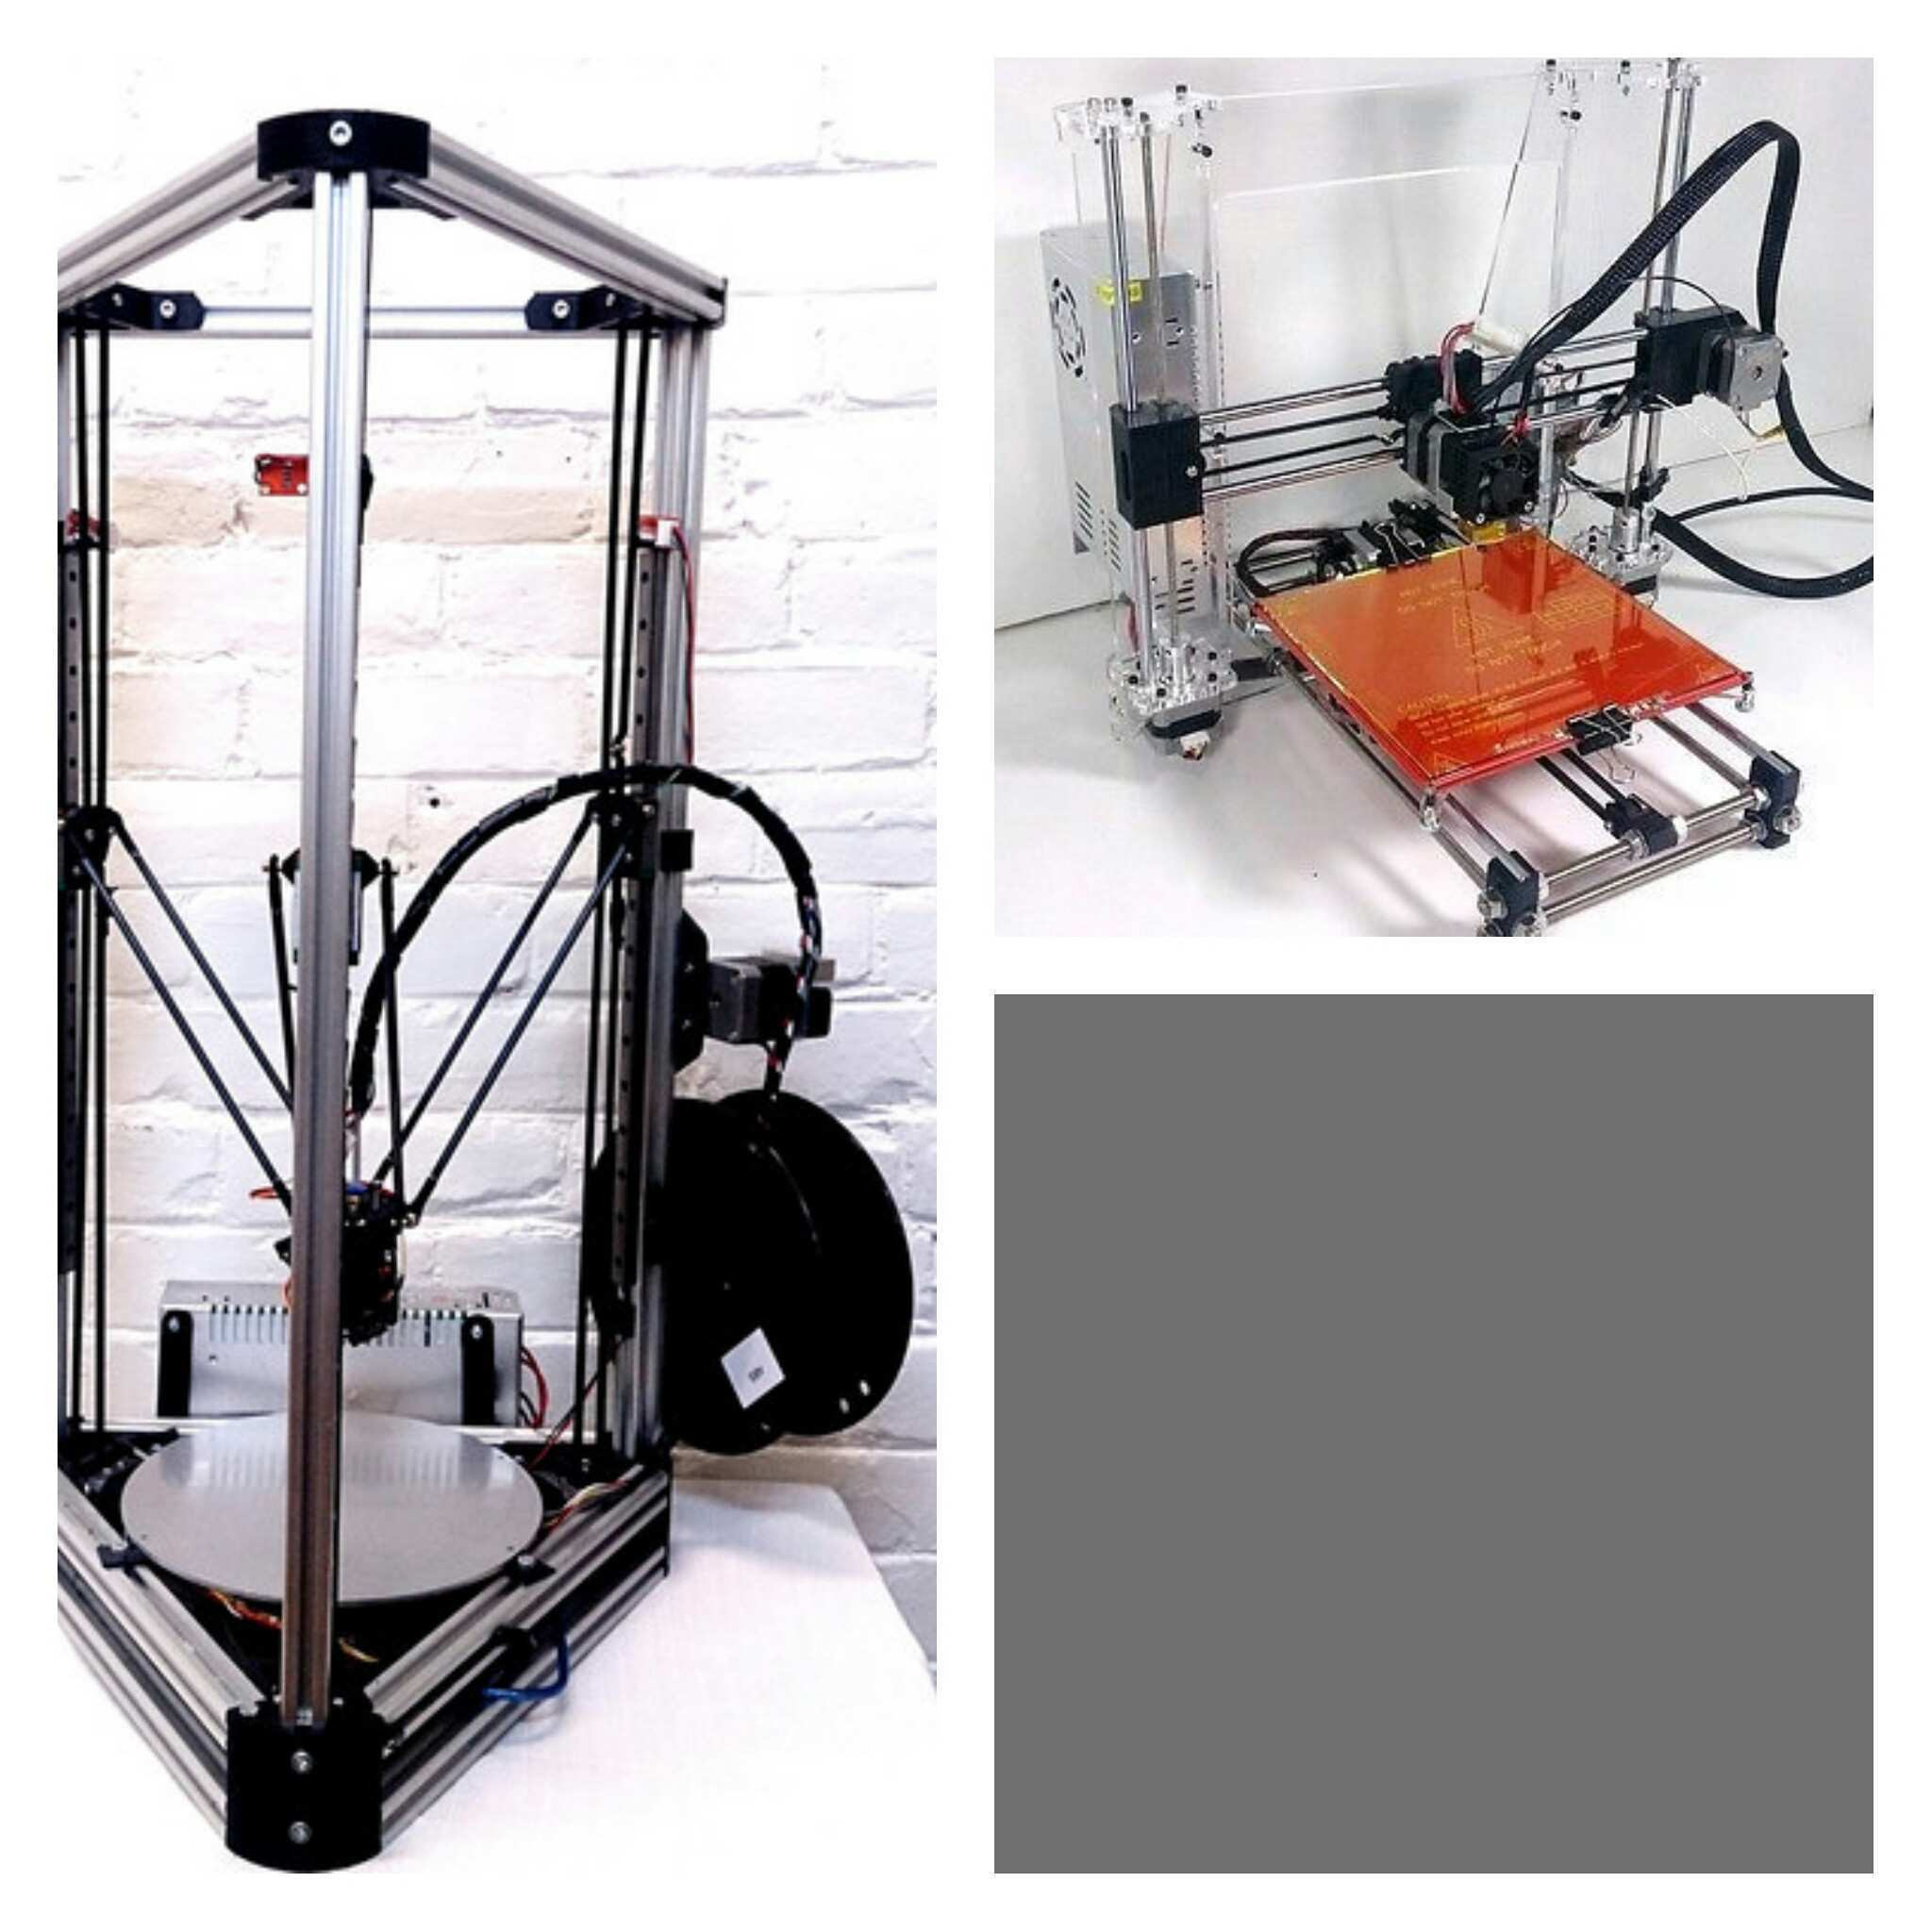 11 All New Kossel Mini 2020 Stl Specs and Review with Kossel Mini 2020 Stl